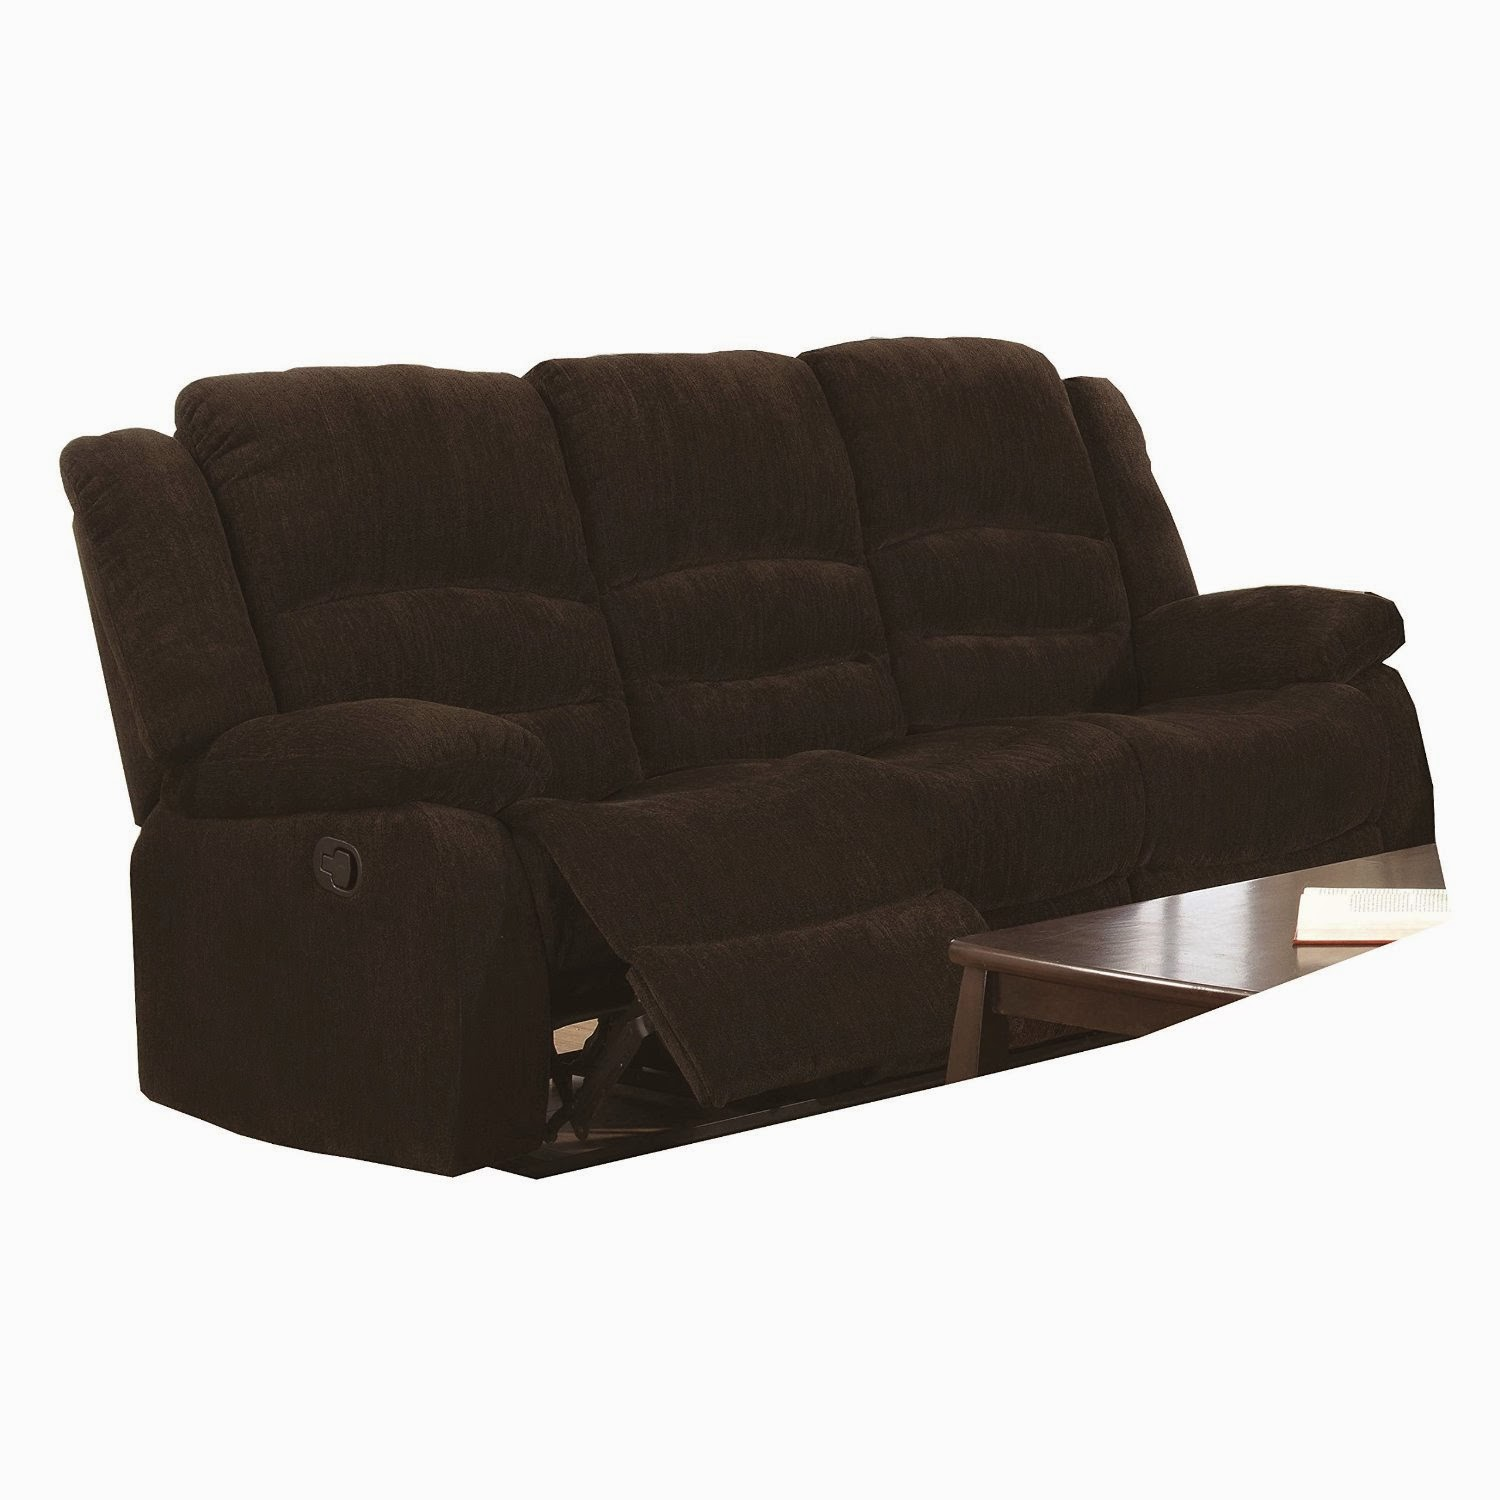 Cheap Sofas On Sale: Cheap Recliner Sofas For Sale: Triple Reclining Sofa Fabric